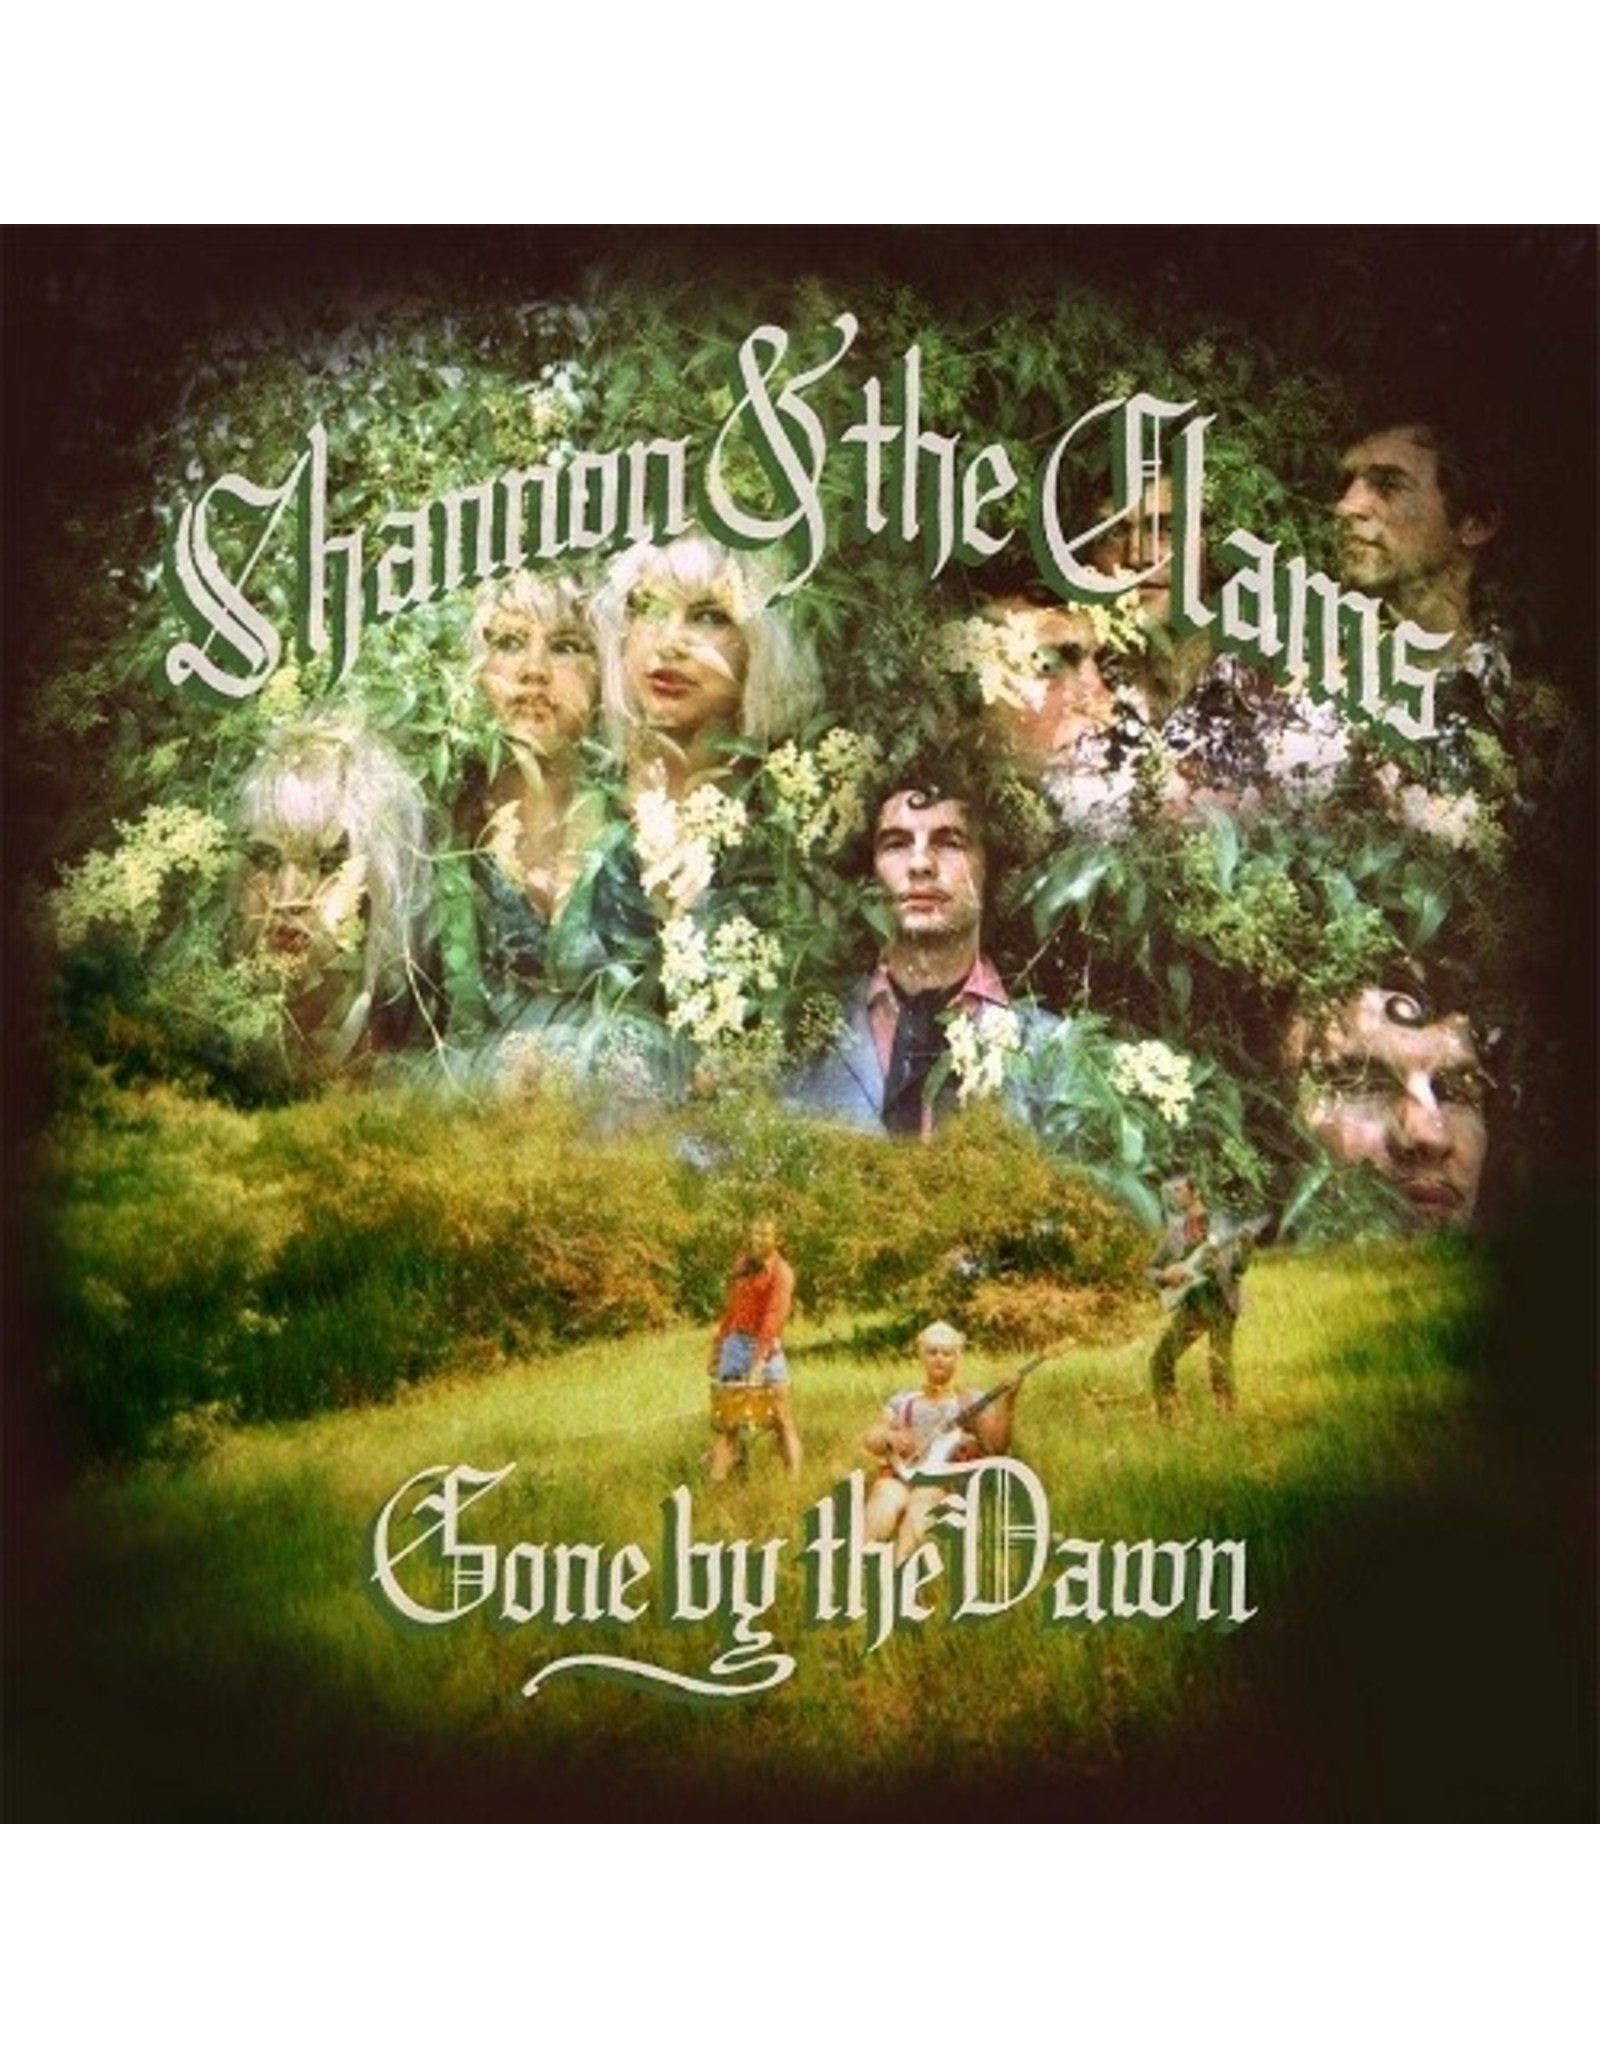 New Vinyl Shannon & The Clams - Gone By The Dawn LP